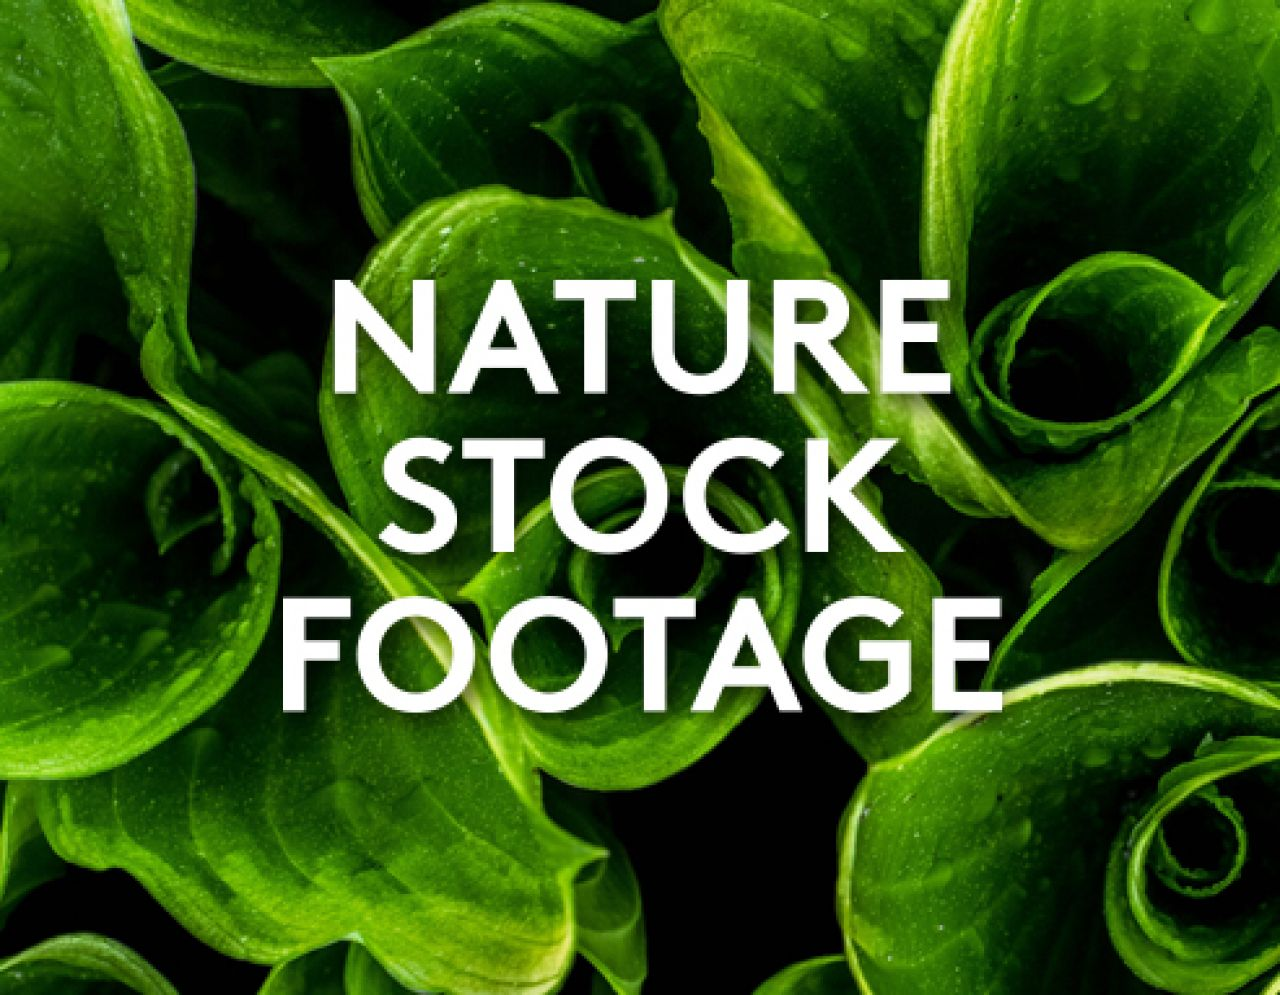 Beautiful HD Nature Stock Footage For Your Next Video | Biteable